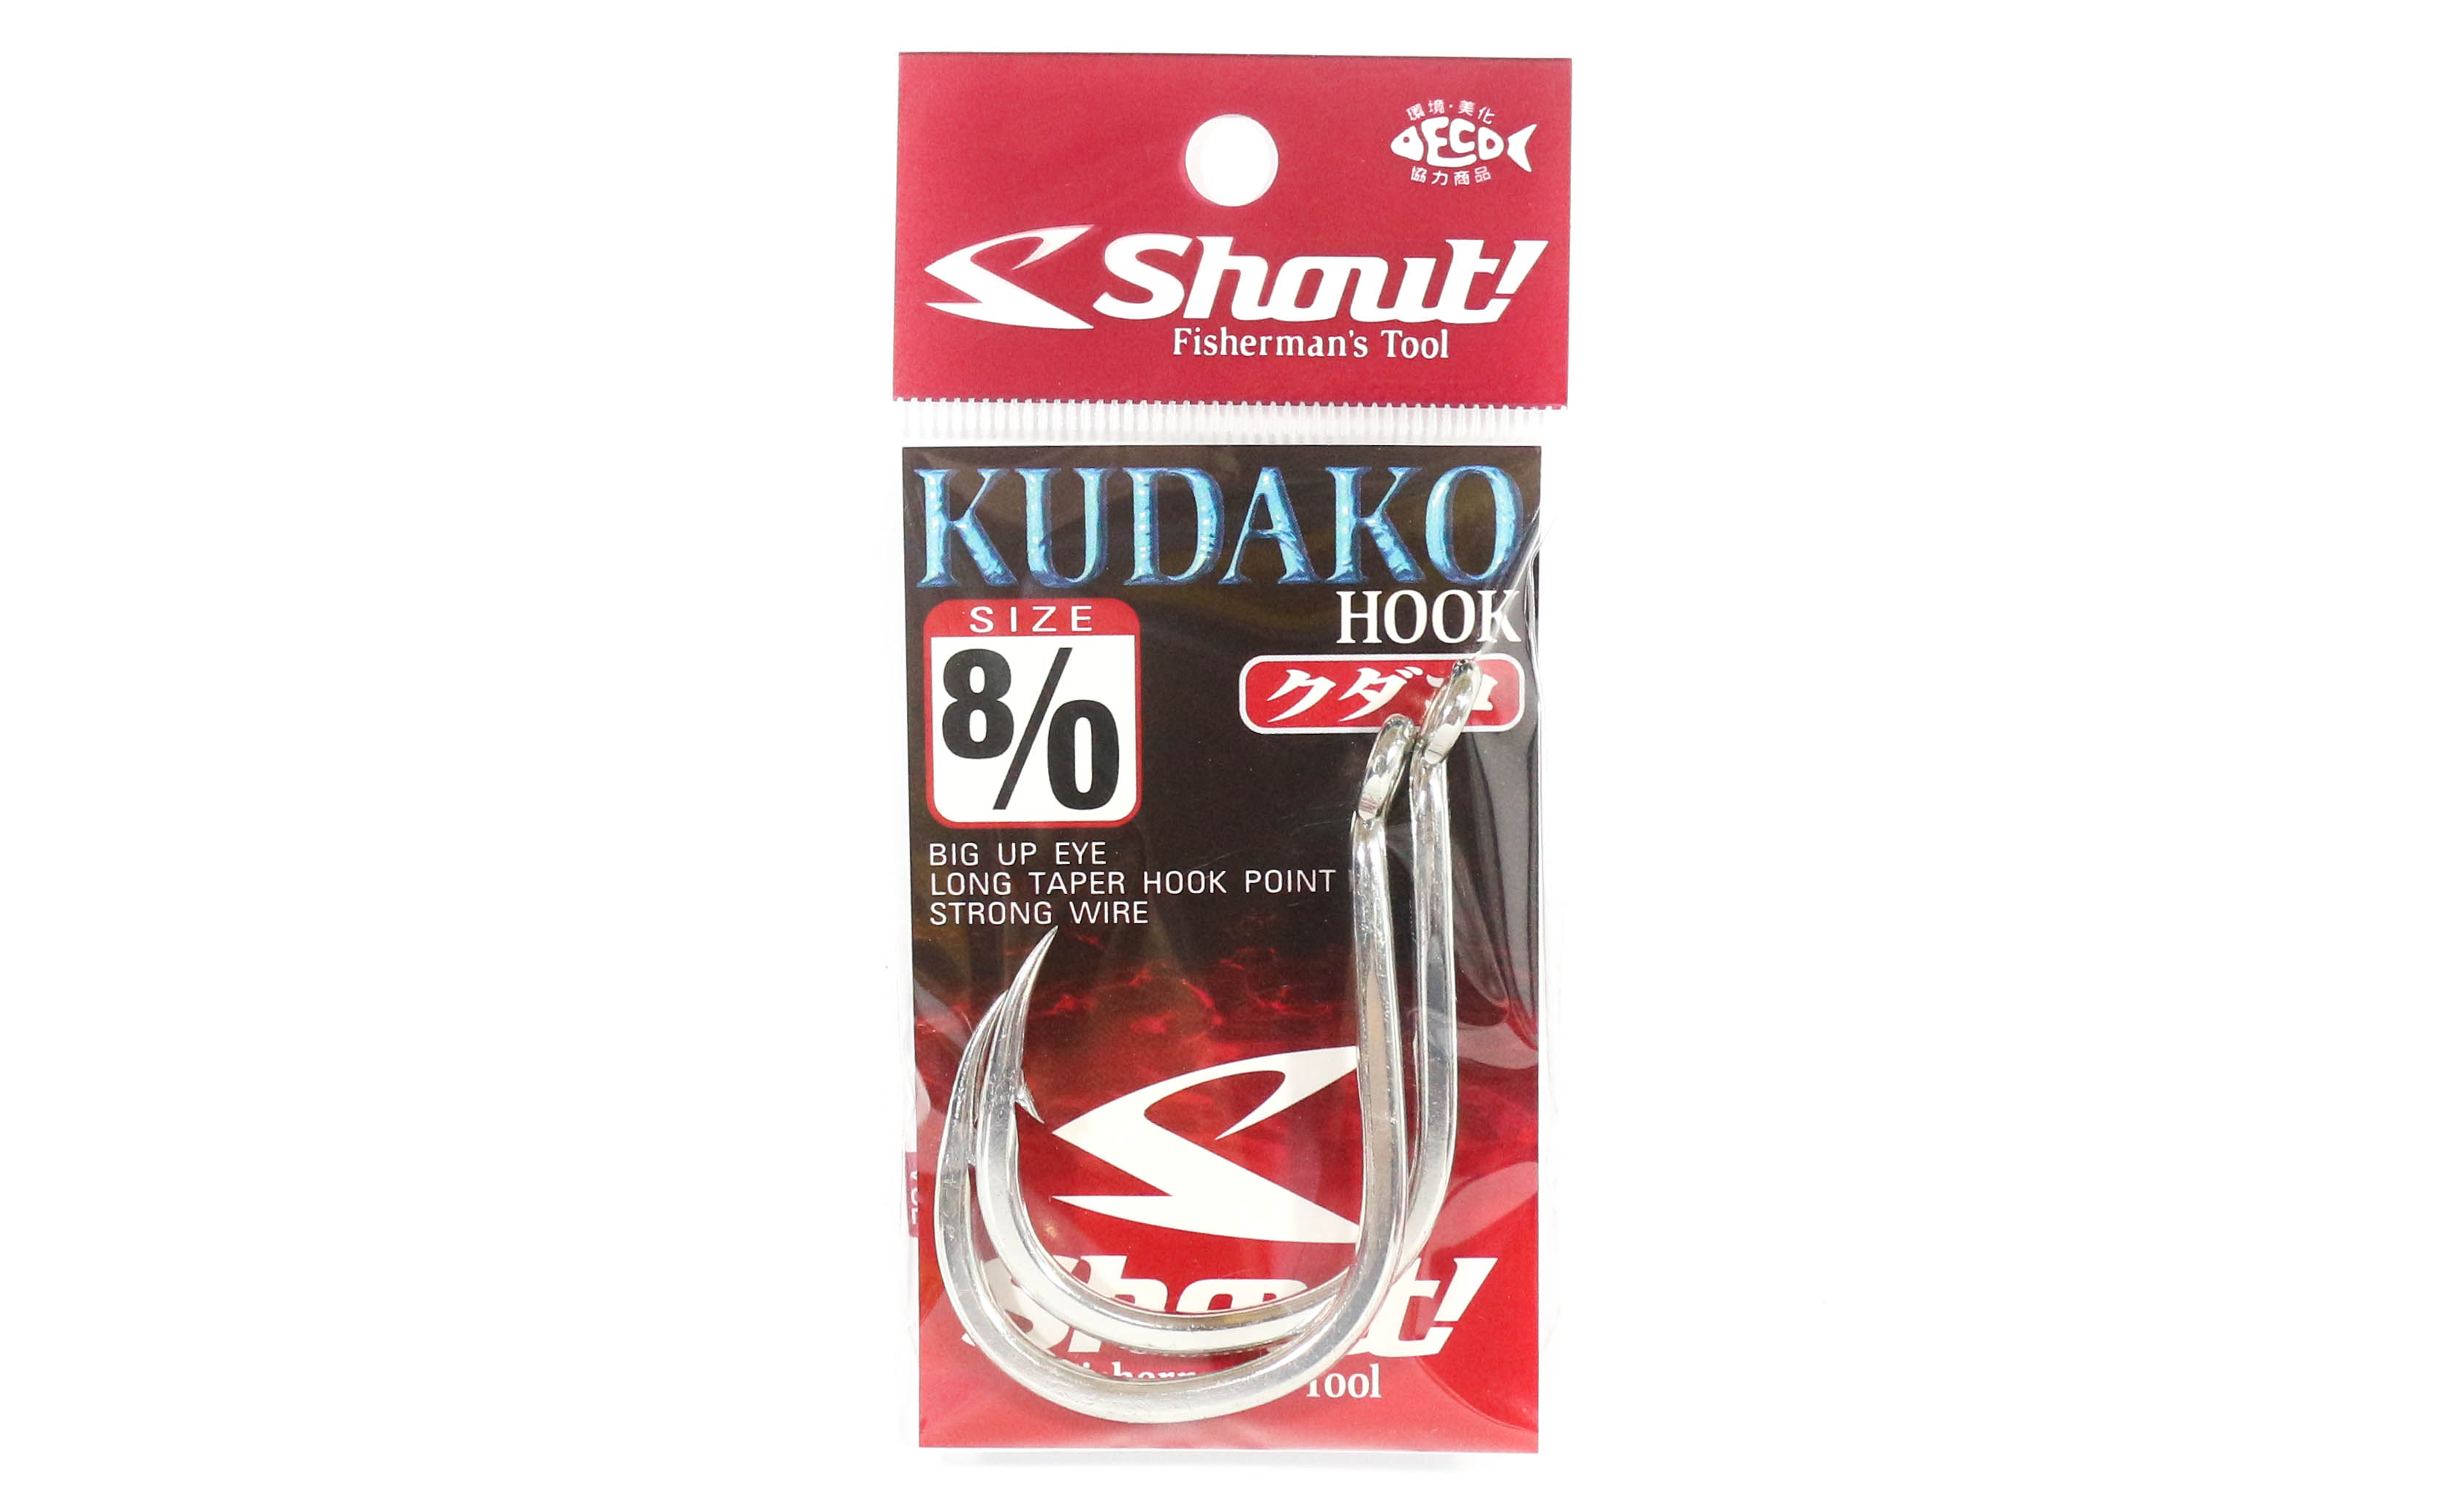 Shout 04-KH Kudako Power Jigging Single Hook Silver Size 8/0 (9976)